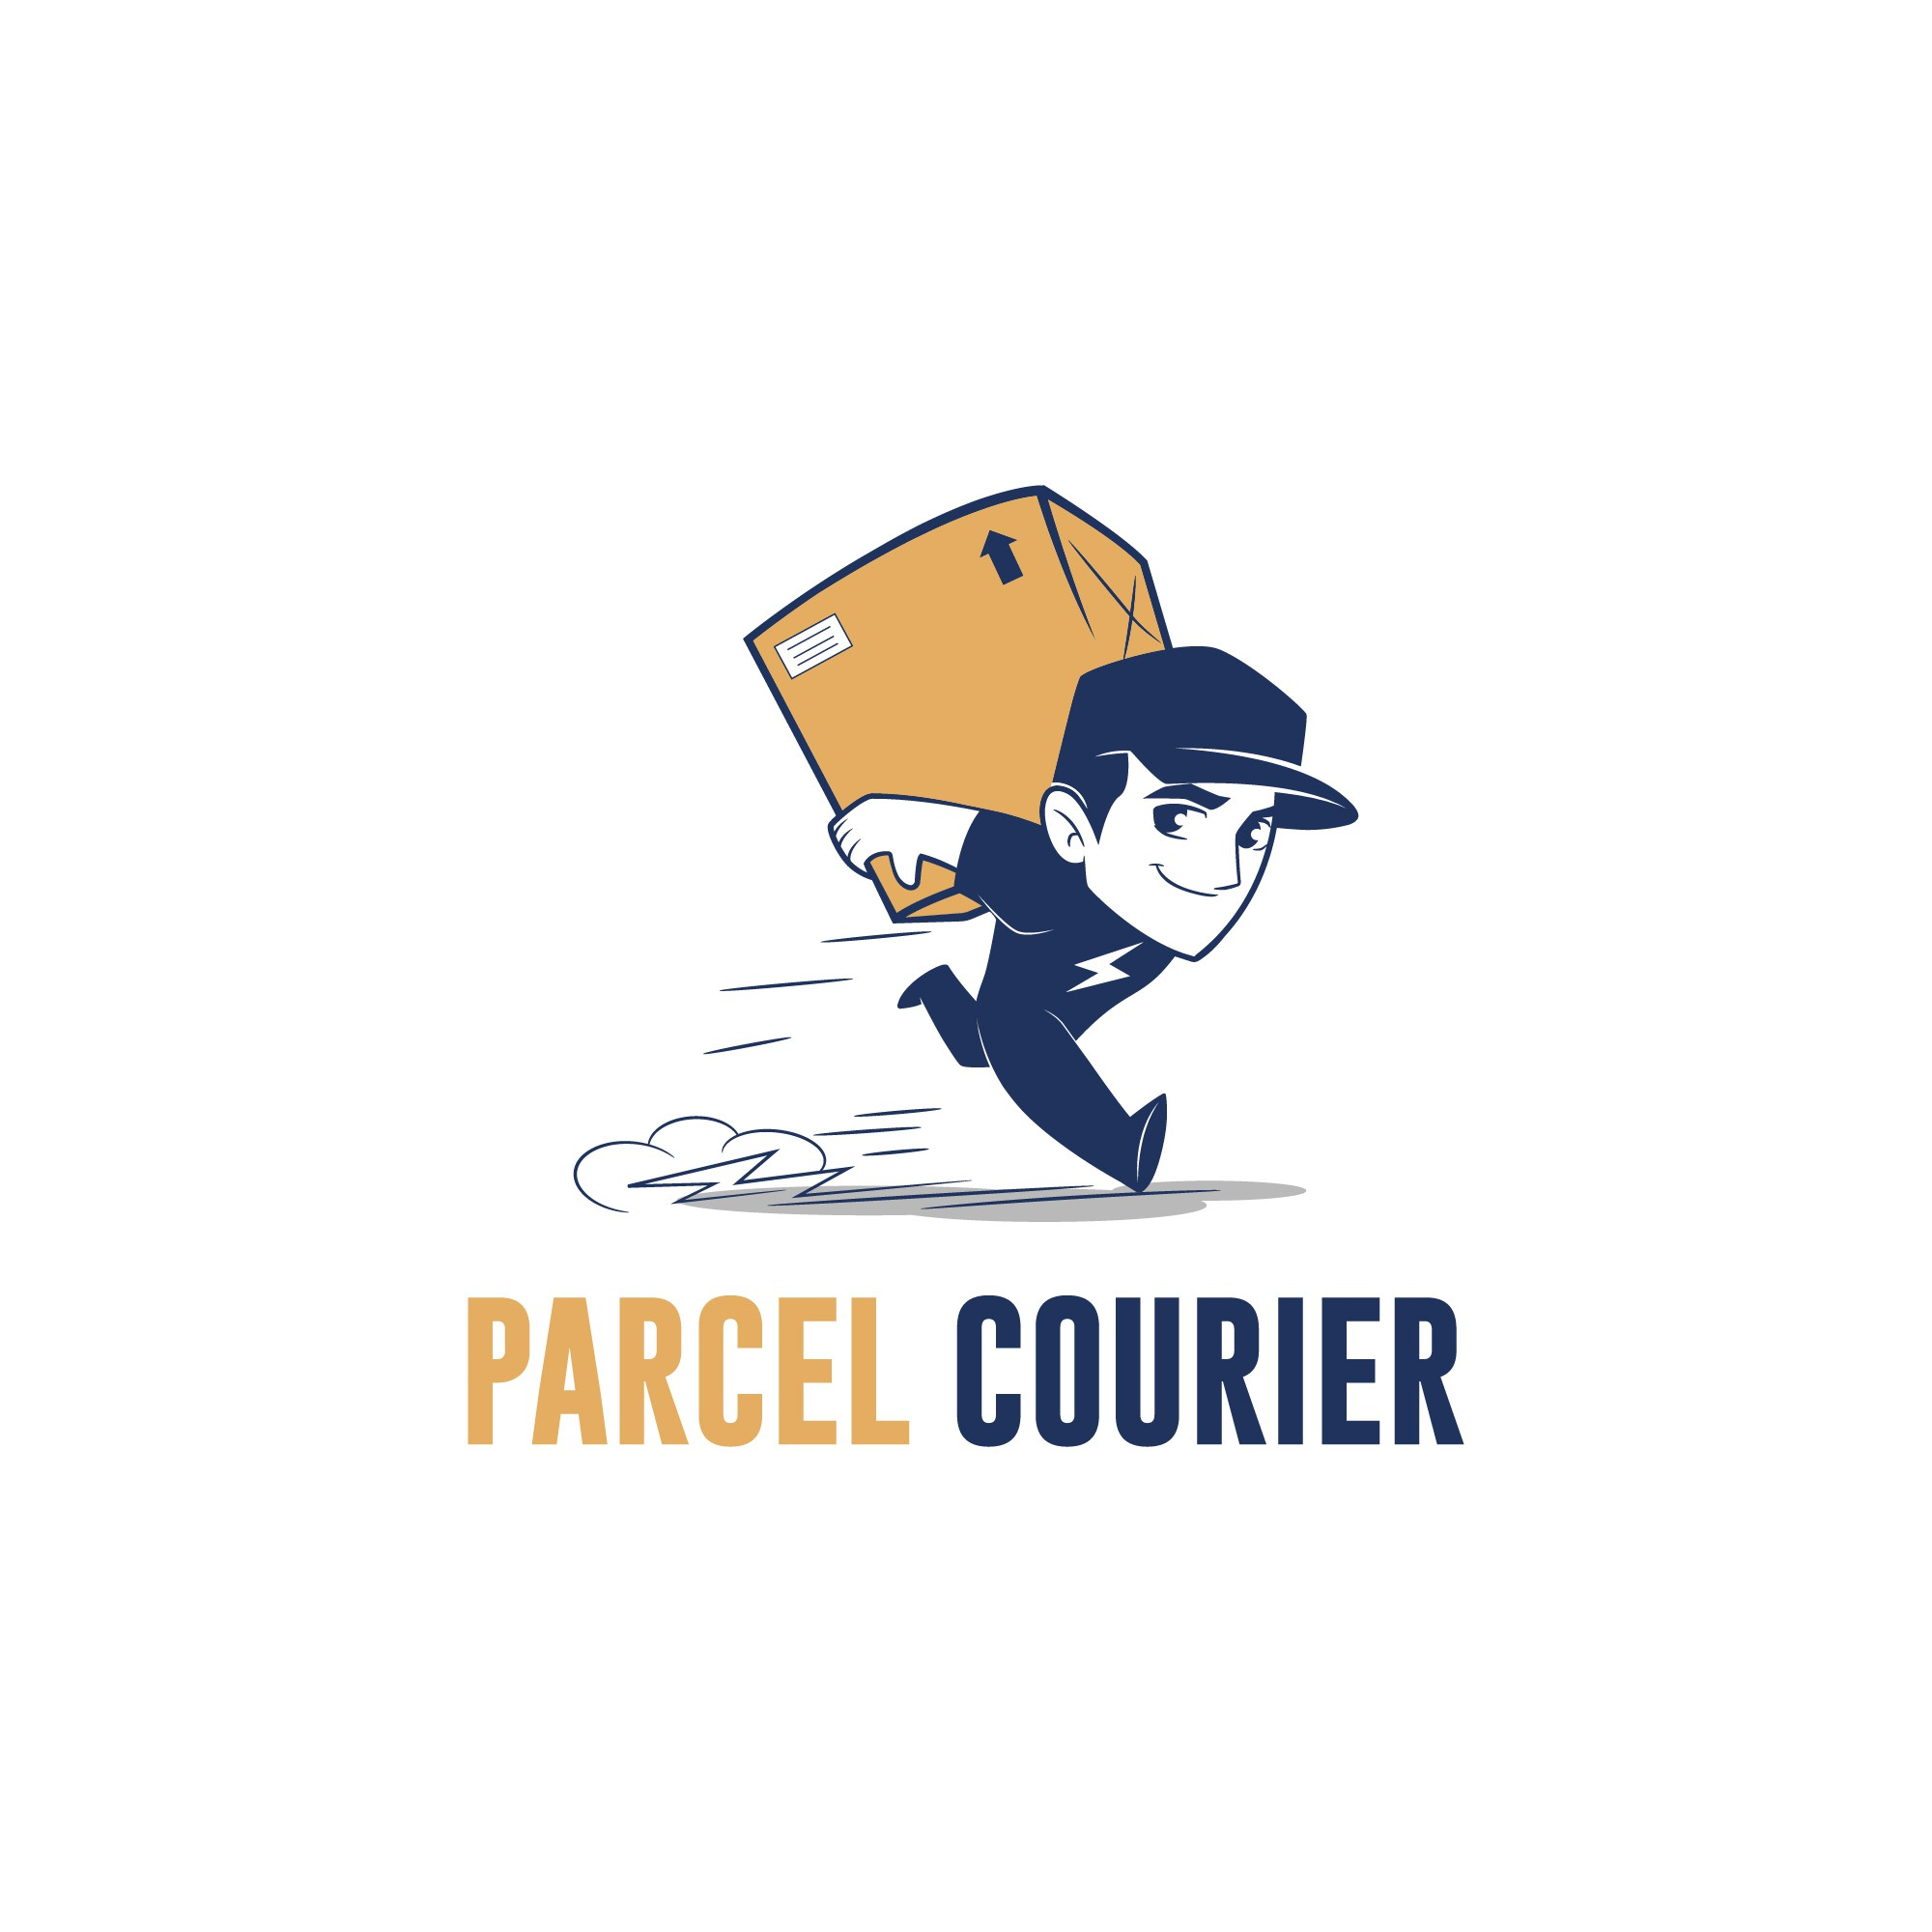 Powerful new logo for our parcel courier business